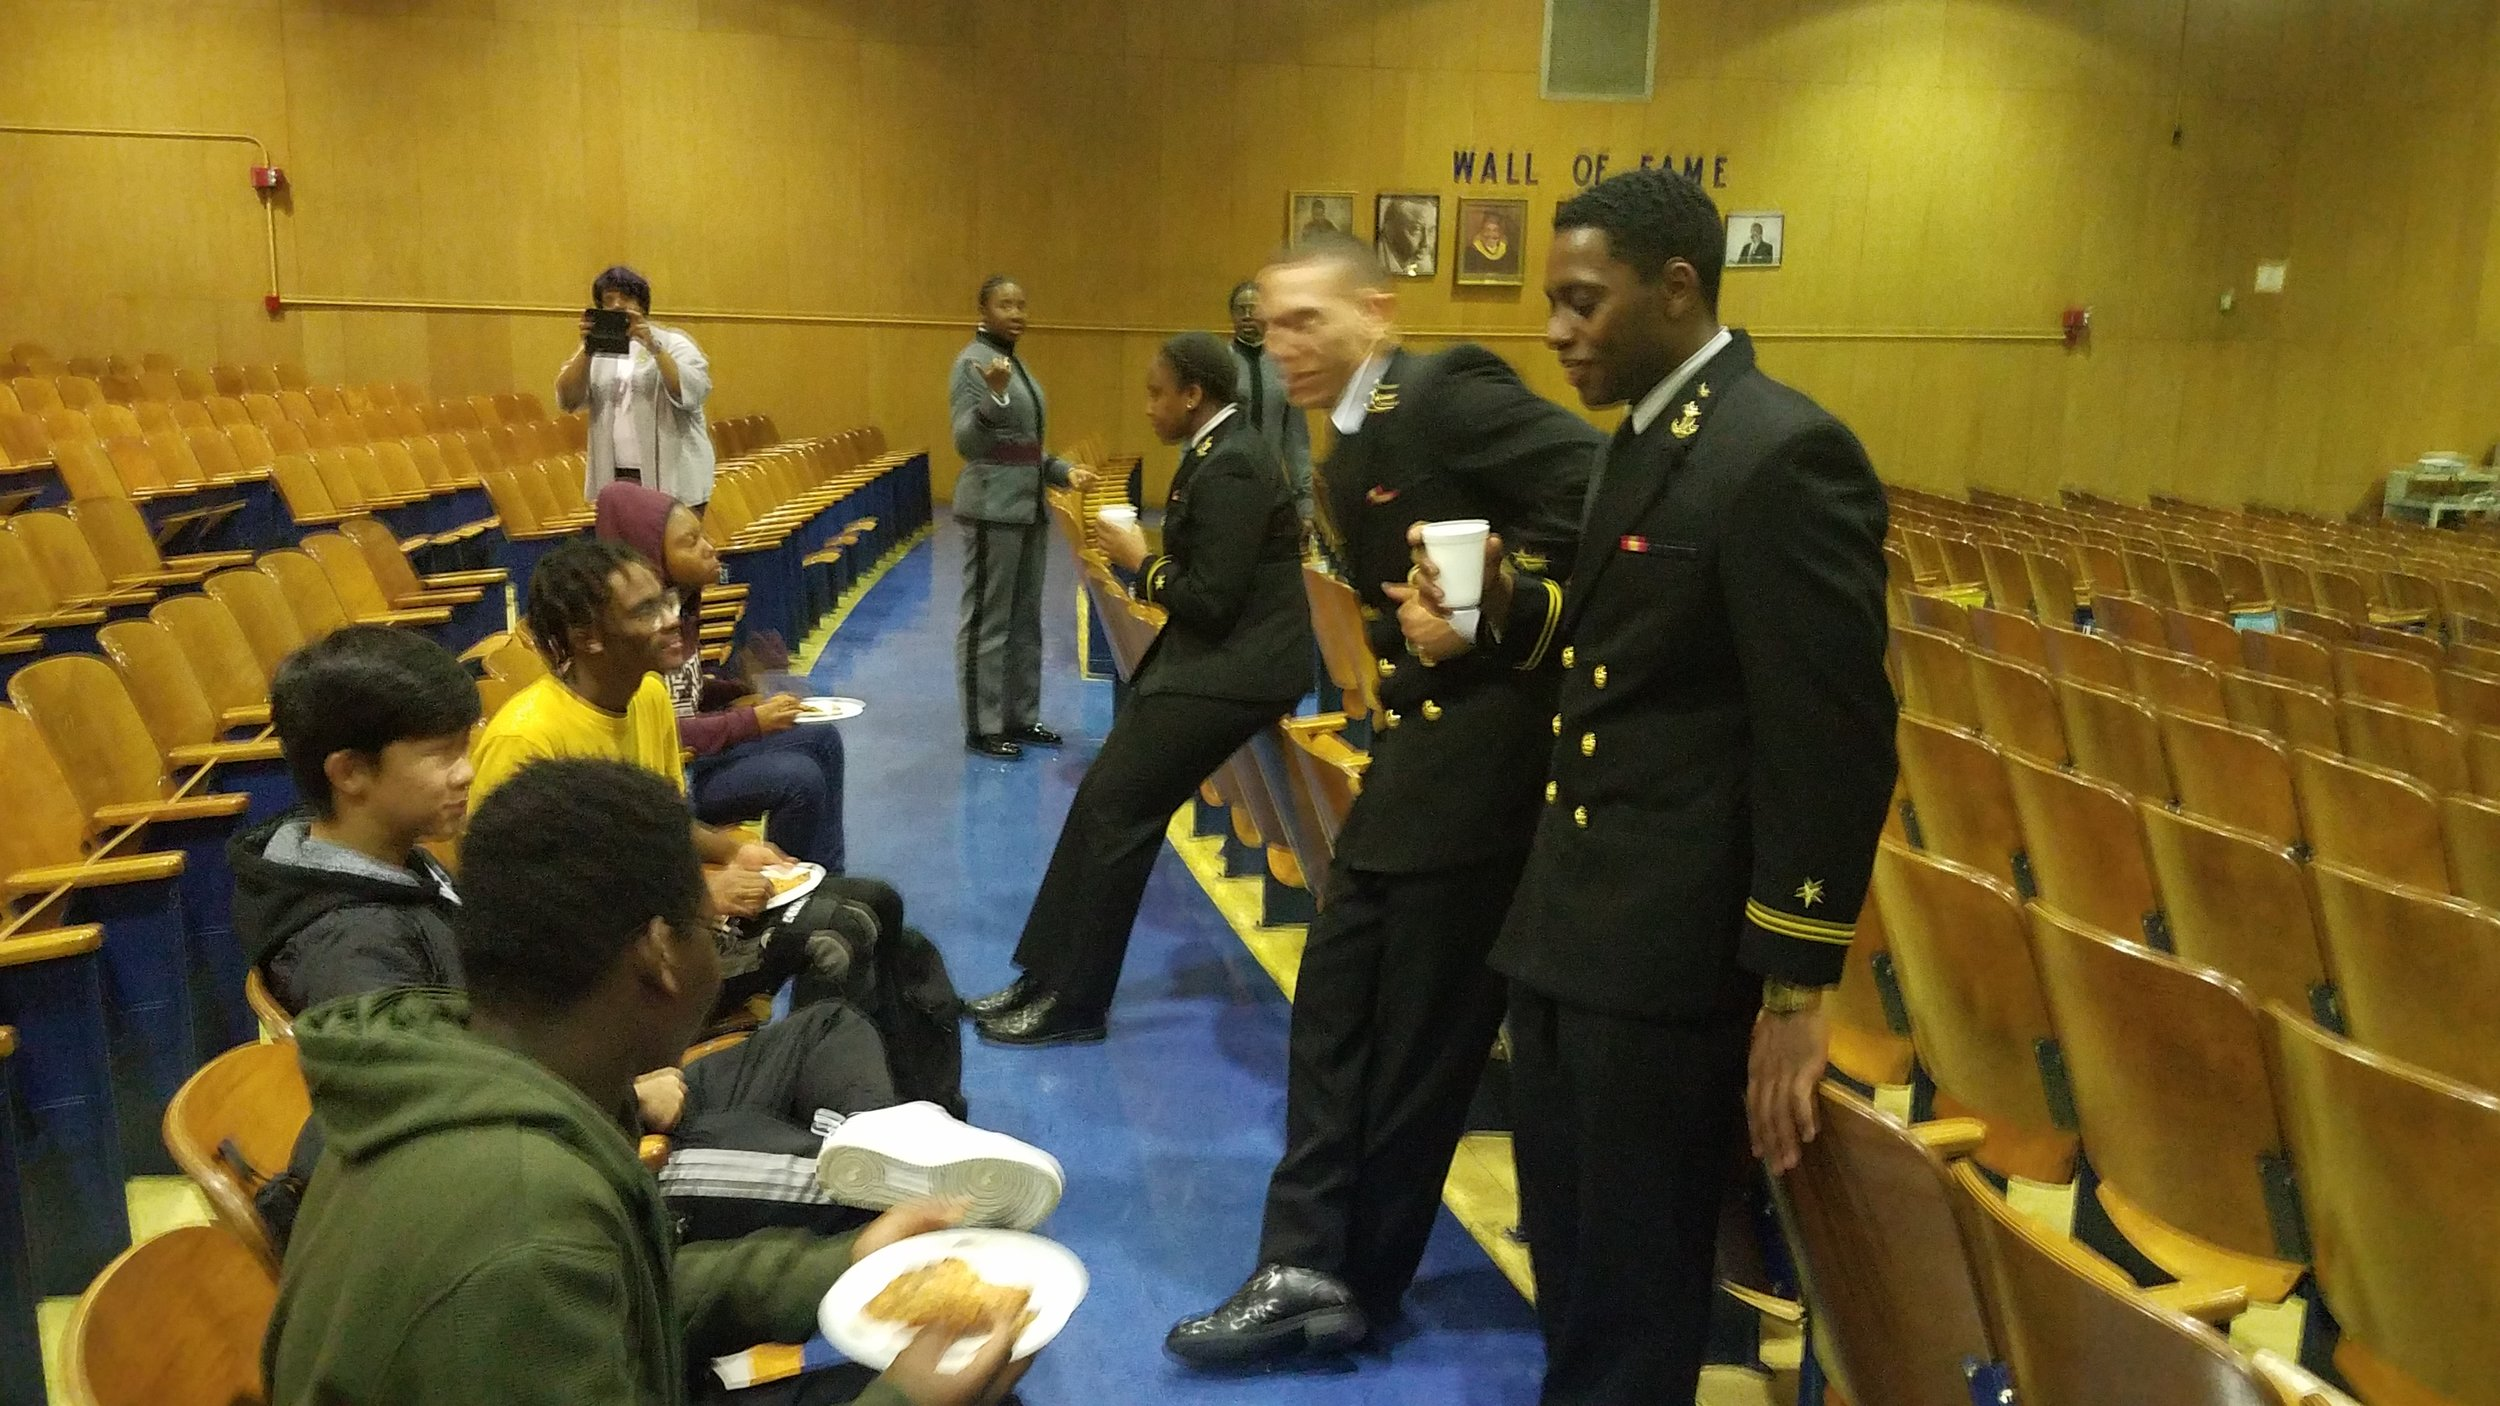 Midshipman spreading knowledge of the USNA with Middle Schoolers.